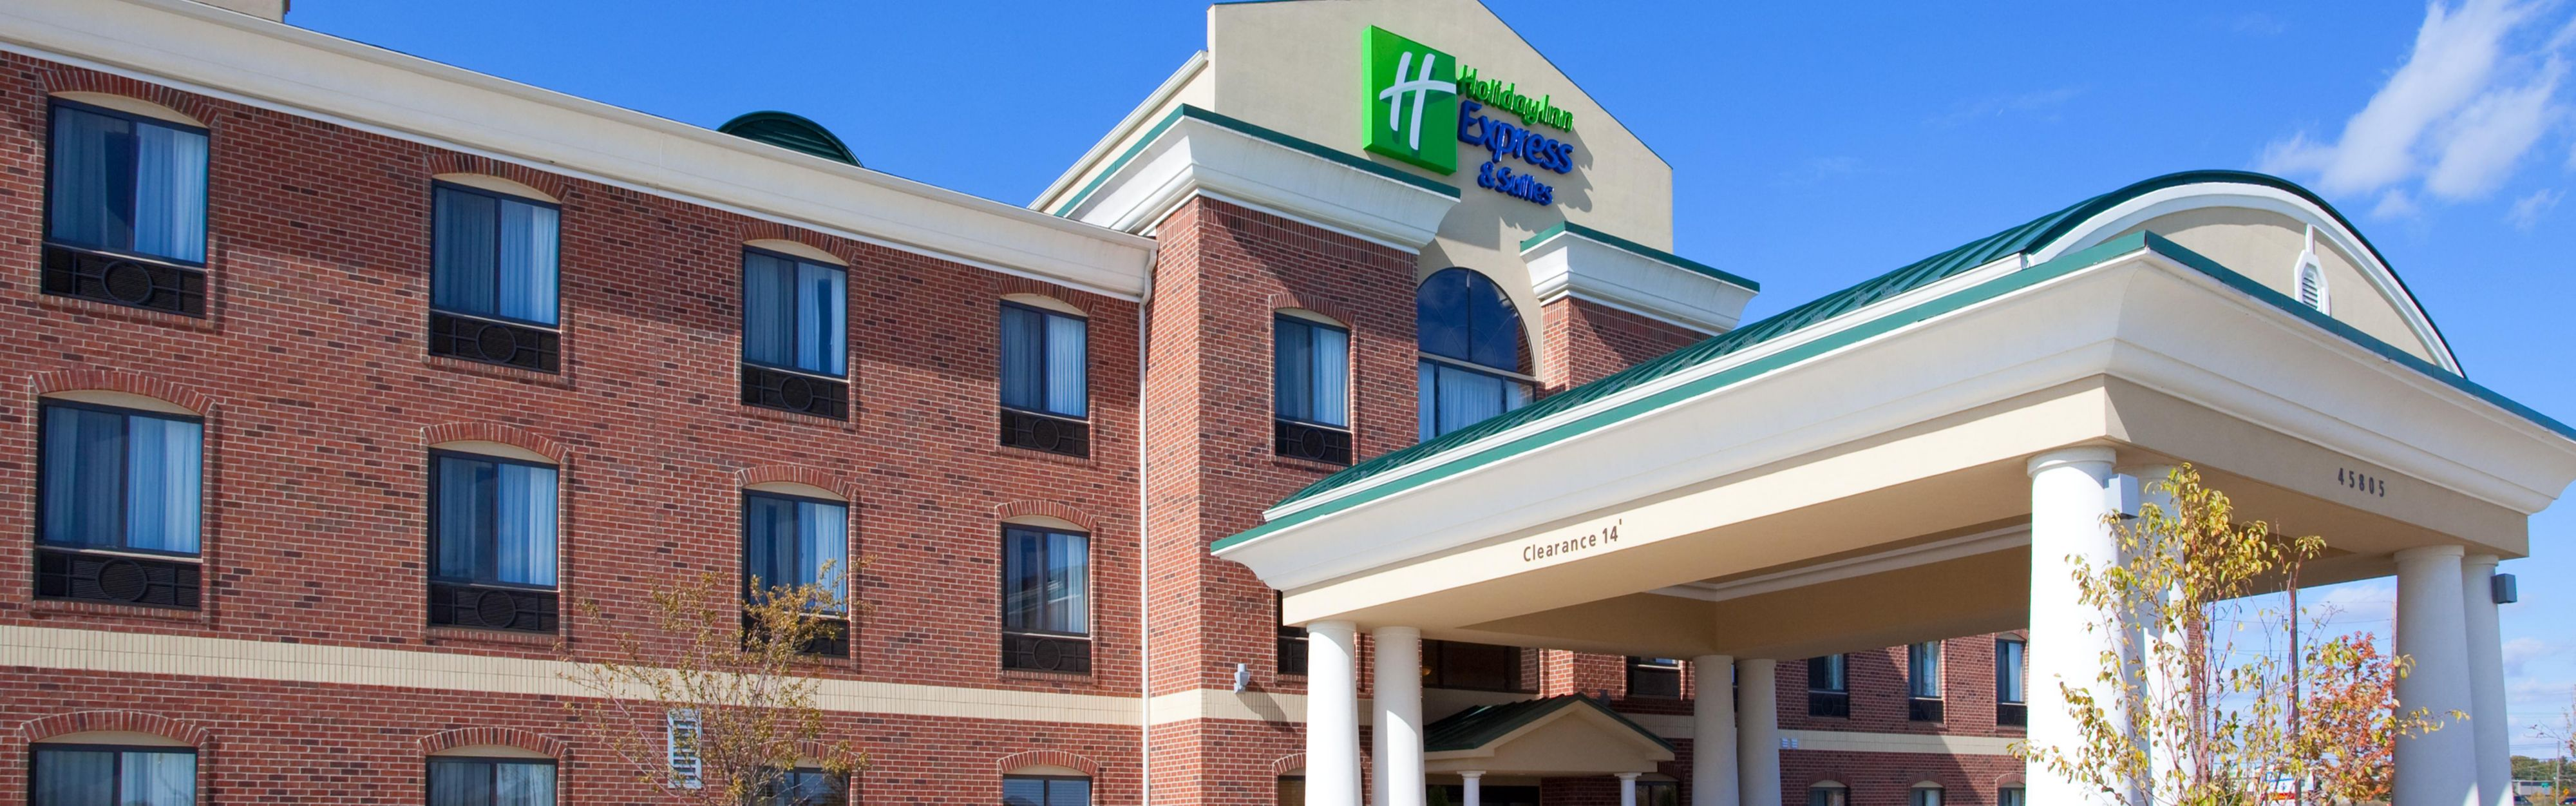 Holiday Inn Express & Suites Chesterfield - Selfridge Area image 0